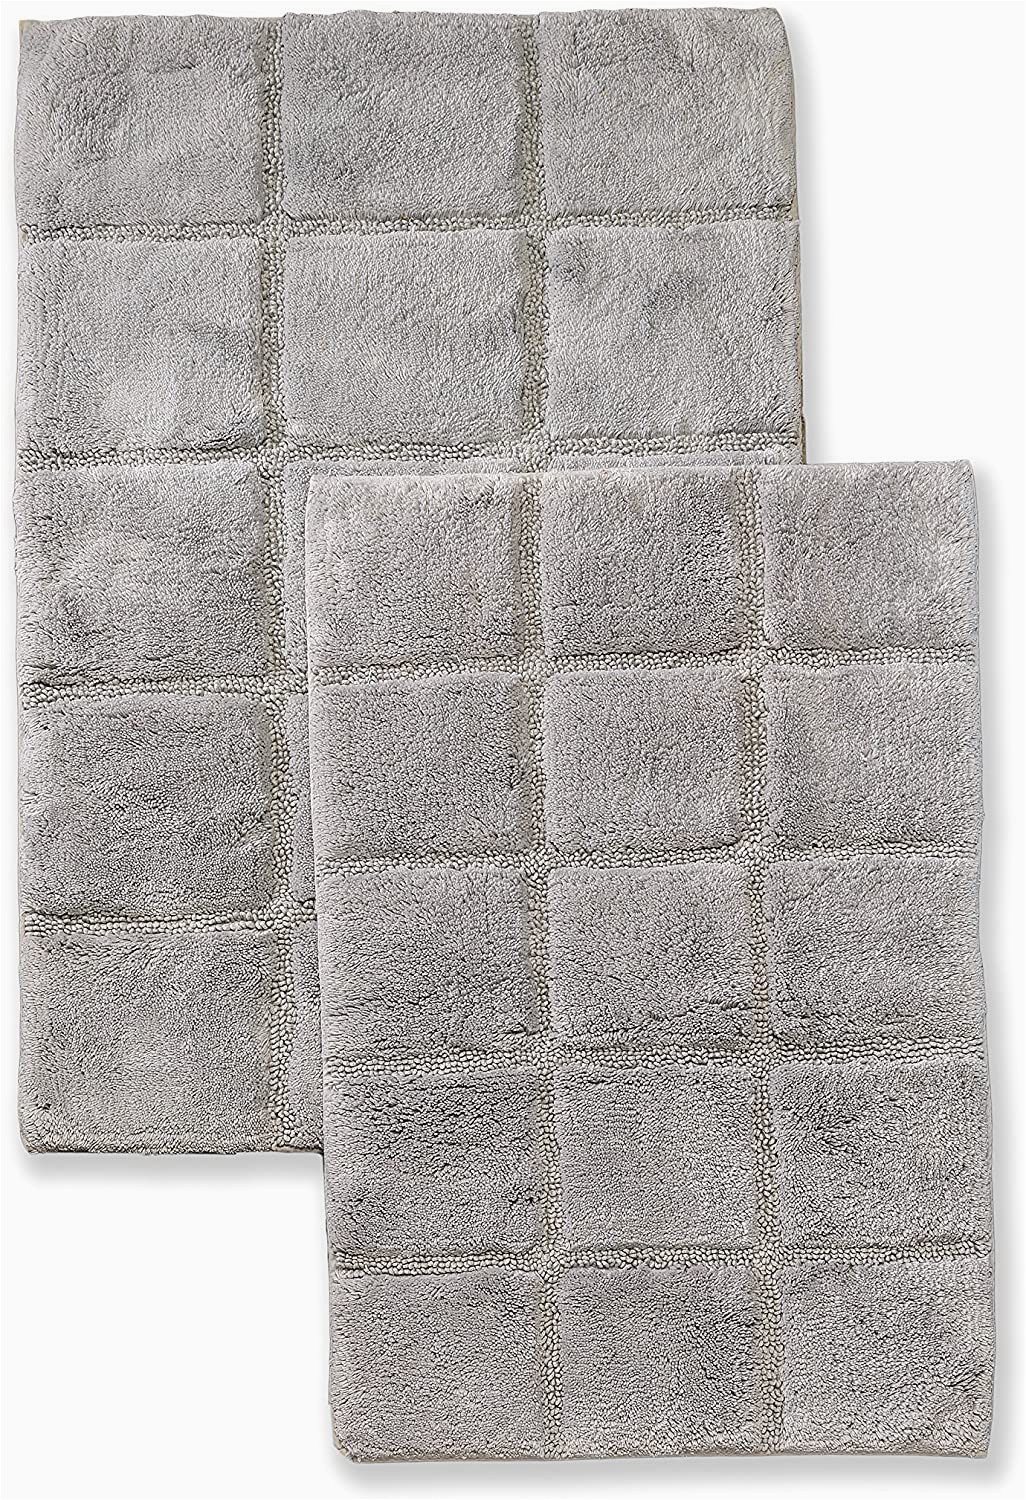 Cotton Bath Rugs Non Slip Superior Non Slip Bath Rug 2 Pack Ultra Plush soft and Absorbent Bed Cotton Pile Contemporary Checkered Bath Mat Set Silver